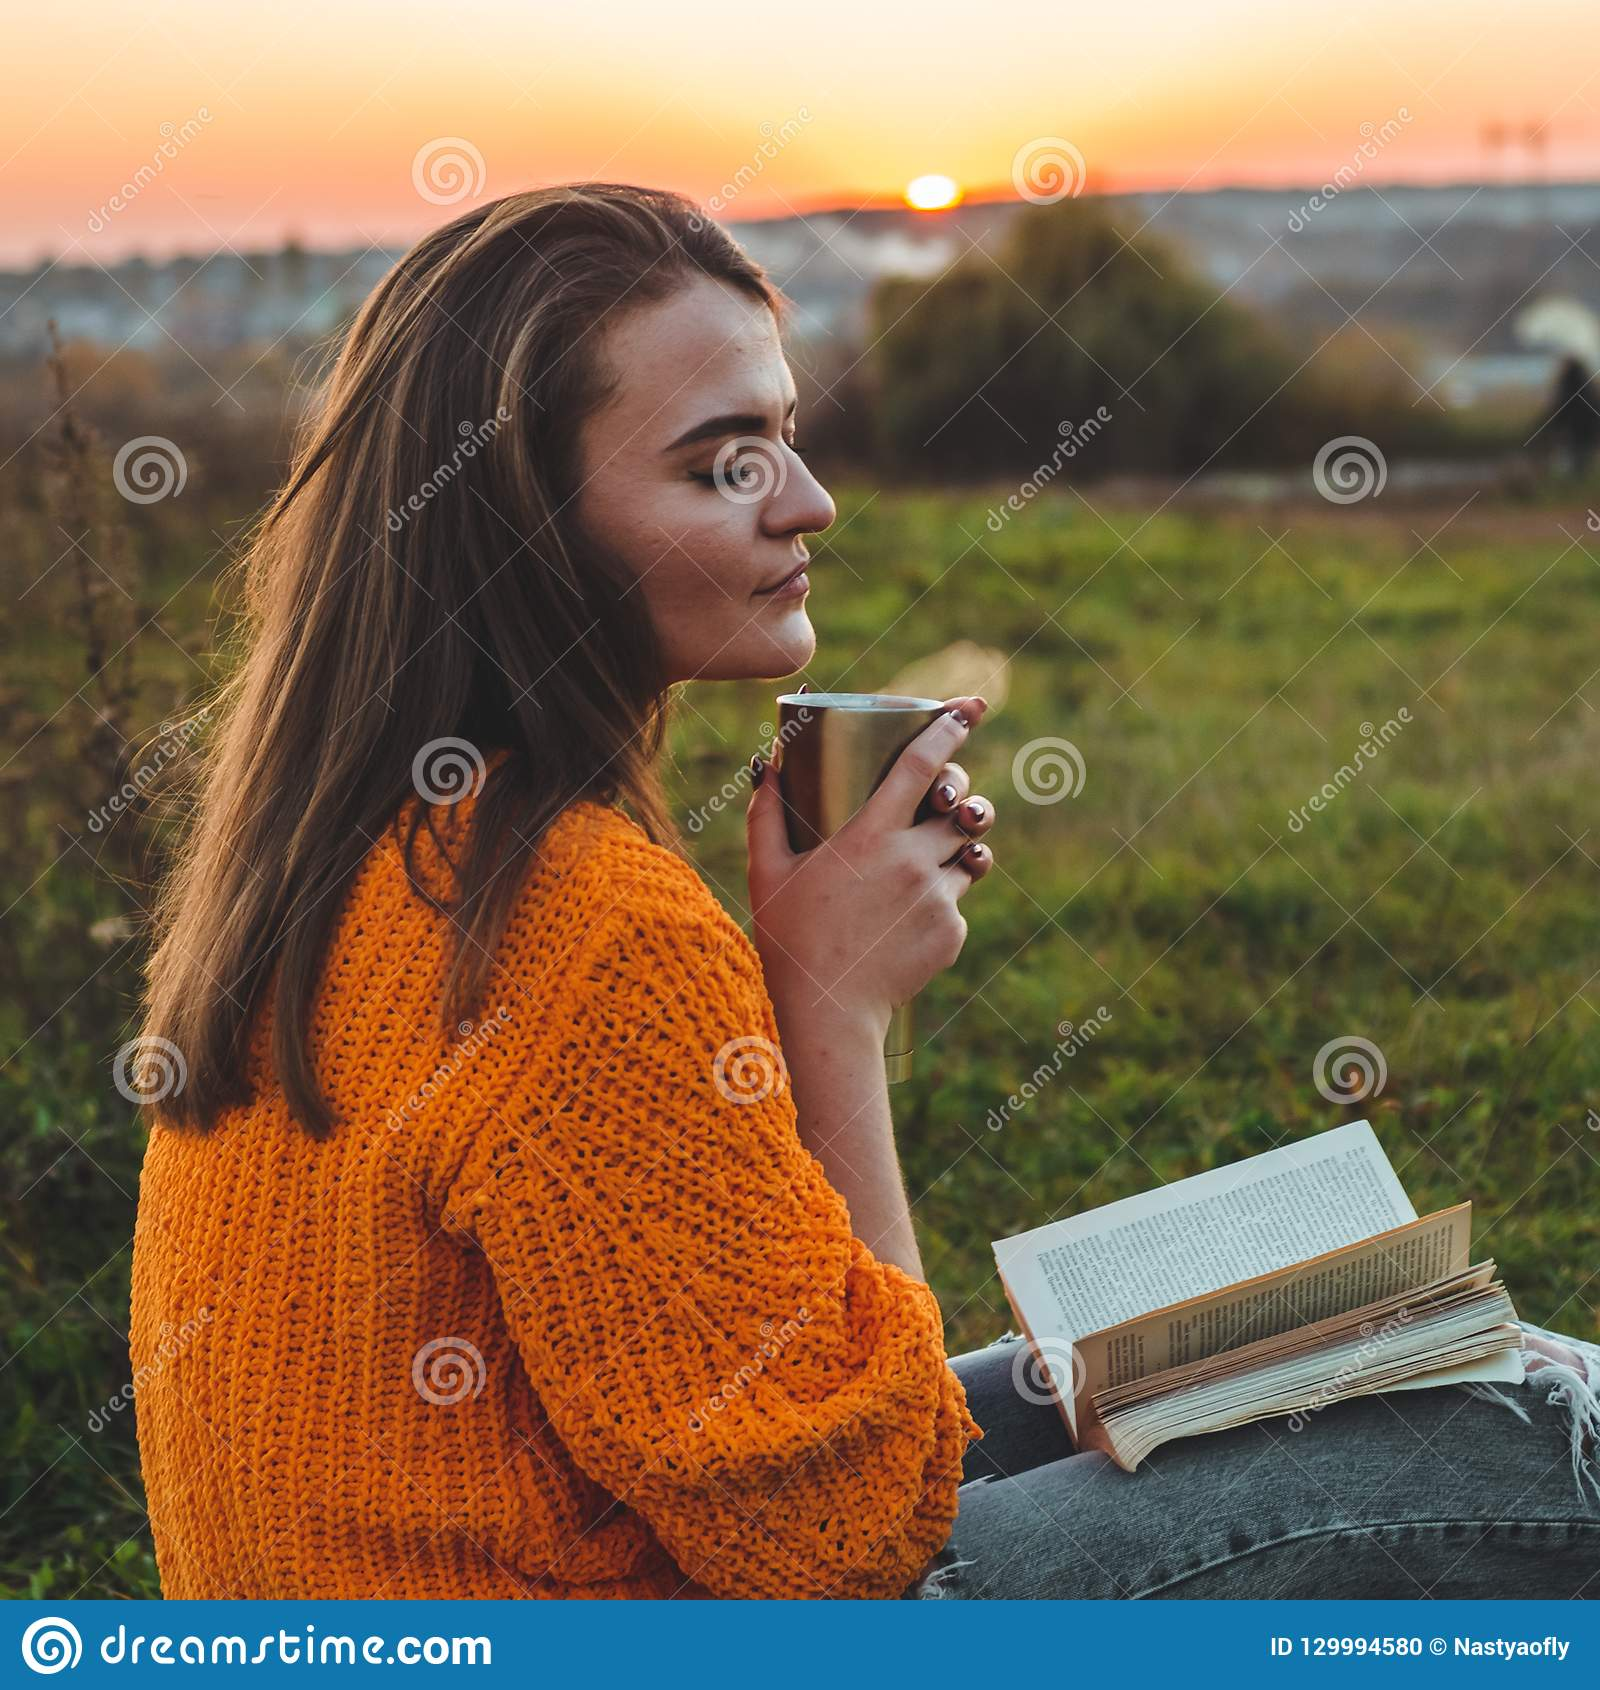 The concept of lifestyle outdoor recreation in autumn. Girl read books on plaid with a thermo cup. Autumn. Sunset. Cozy